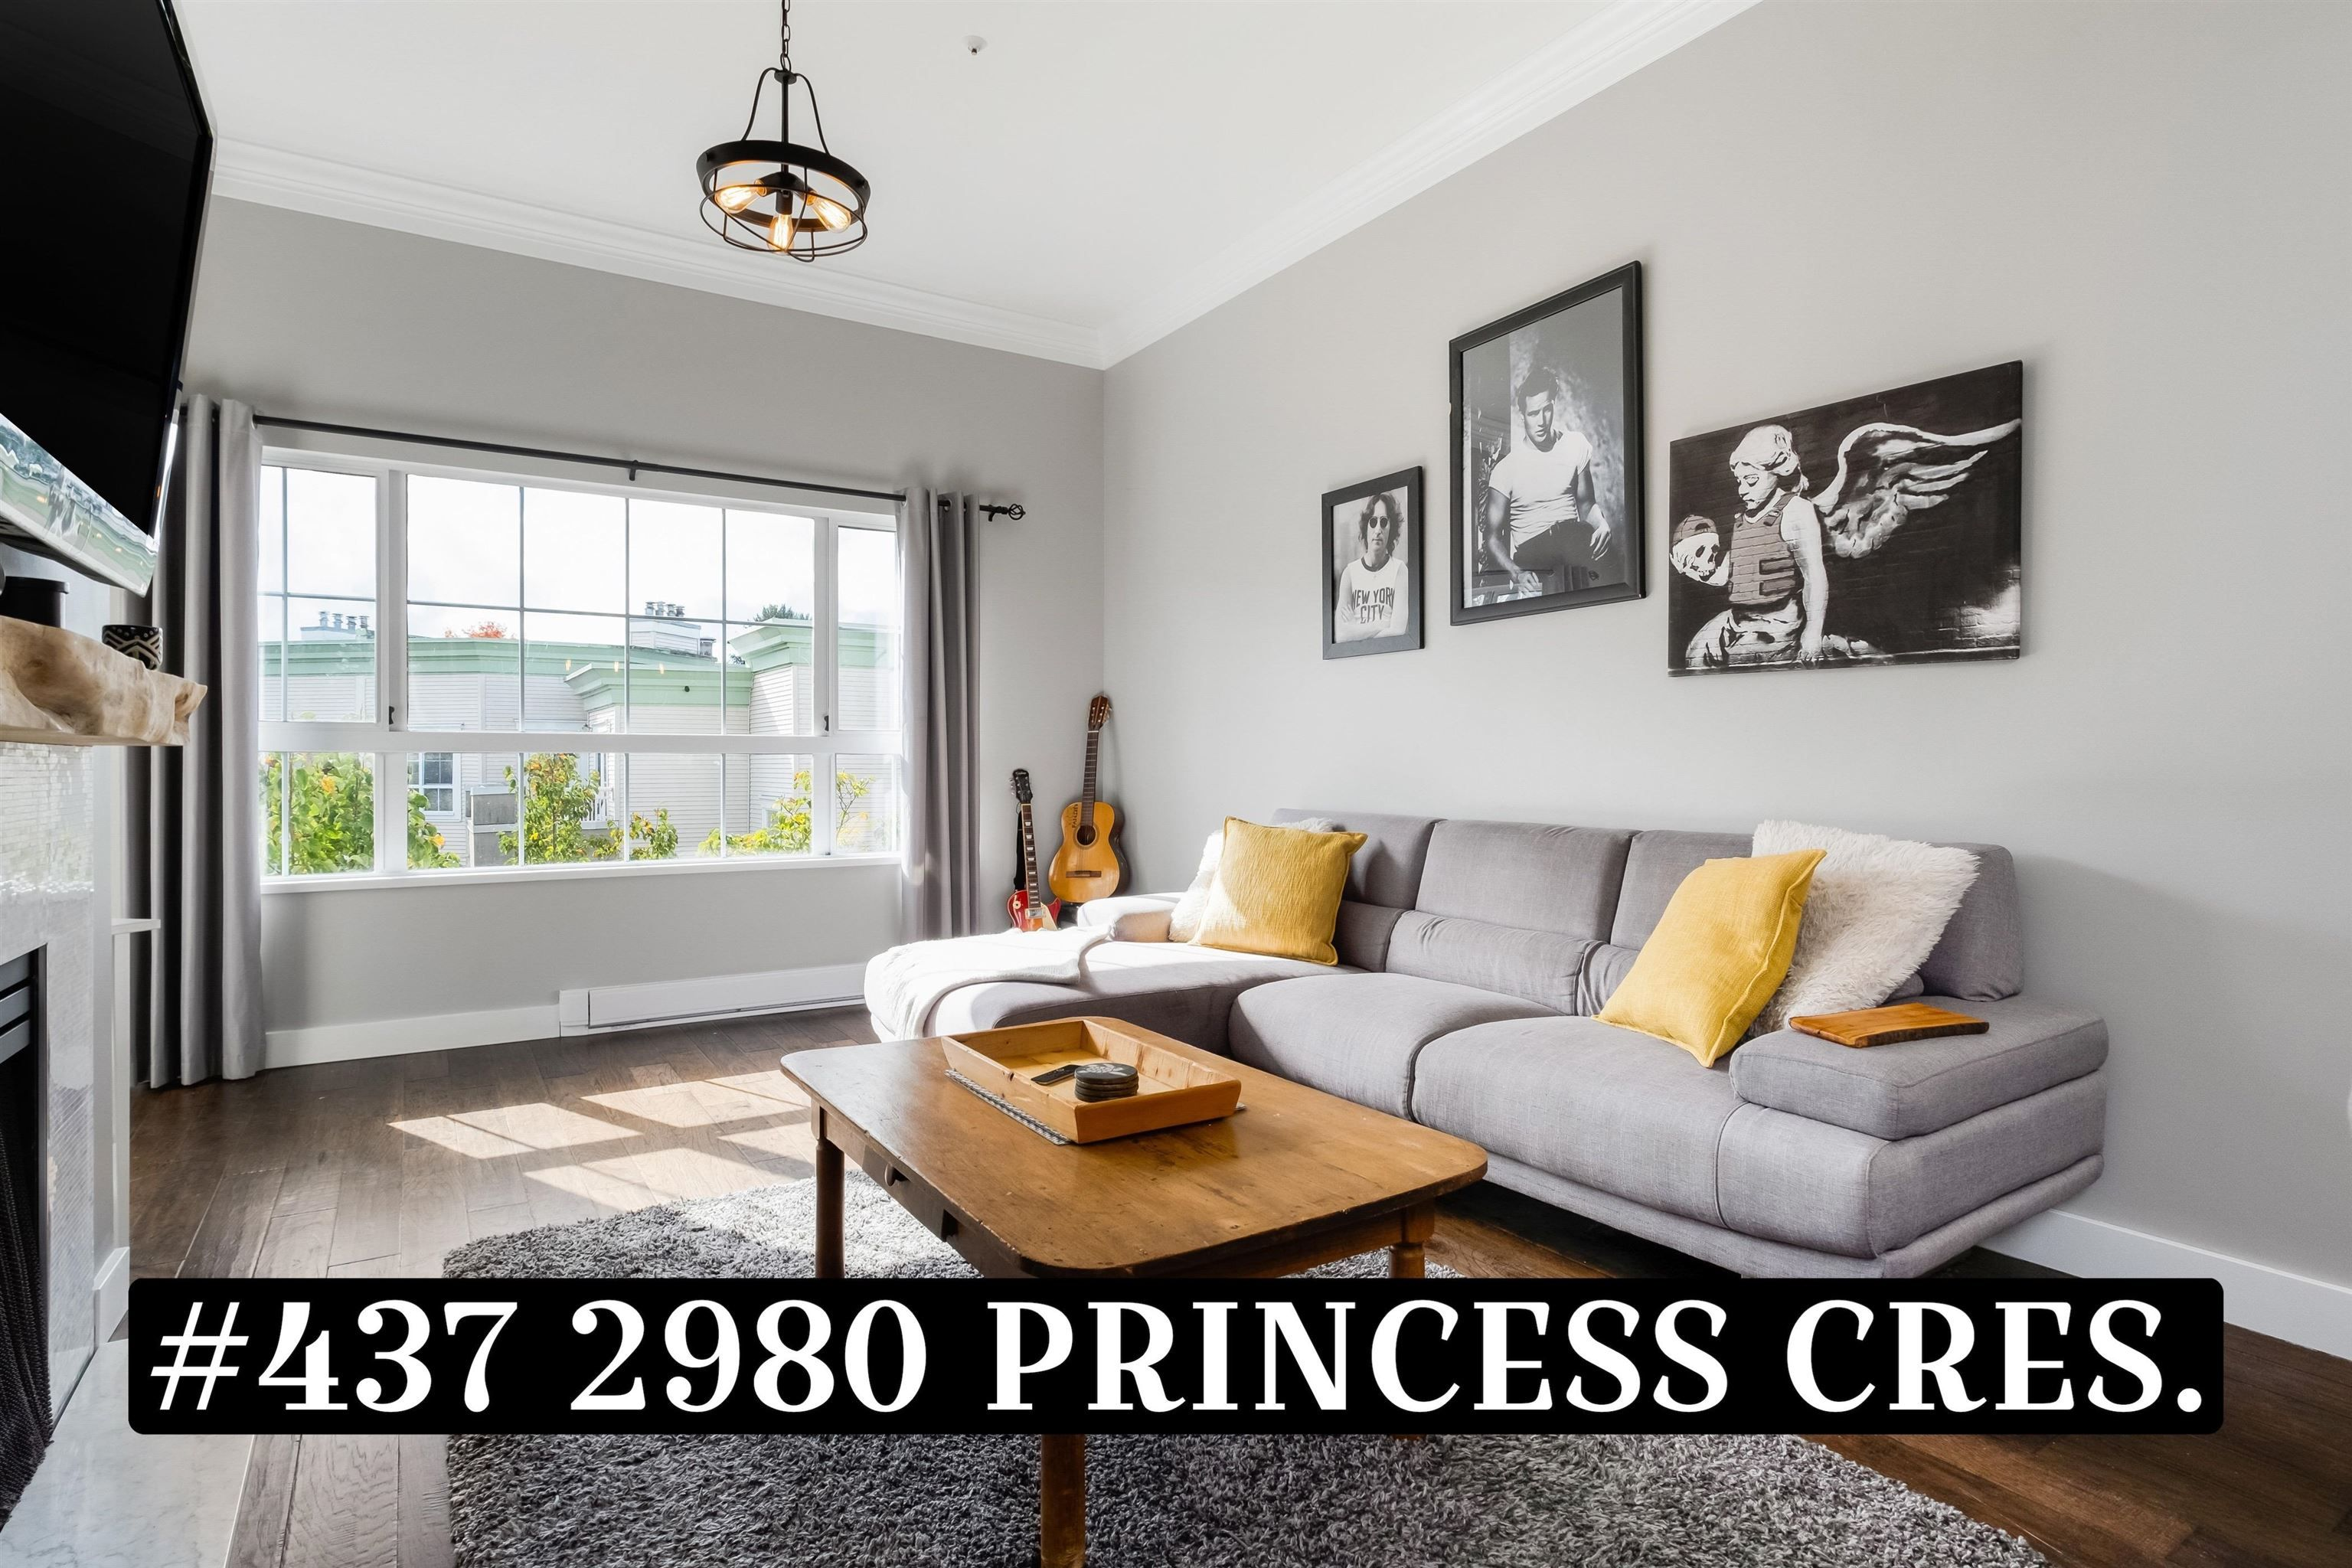 """Main Photo: 437 2980 PRINCESS Crescent in Coquitlam: Canyon Springs Condo for sale in """"Montclaire"""" : MLS®# R2624750"""